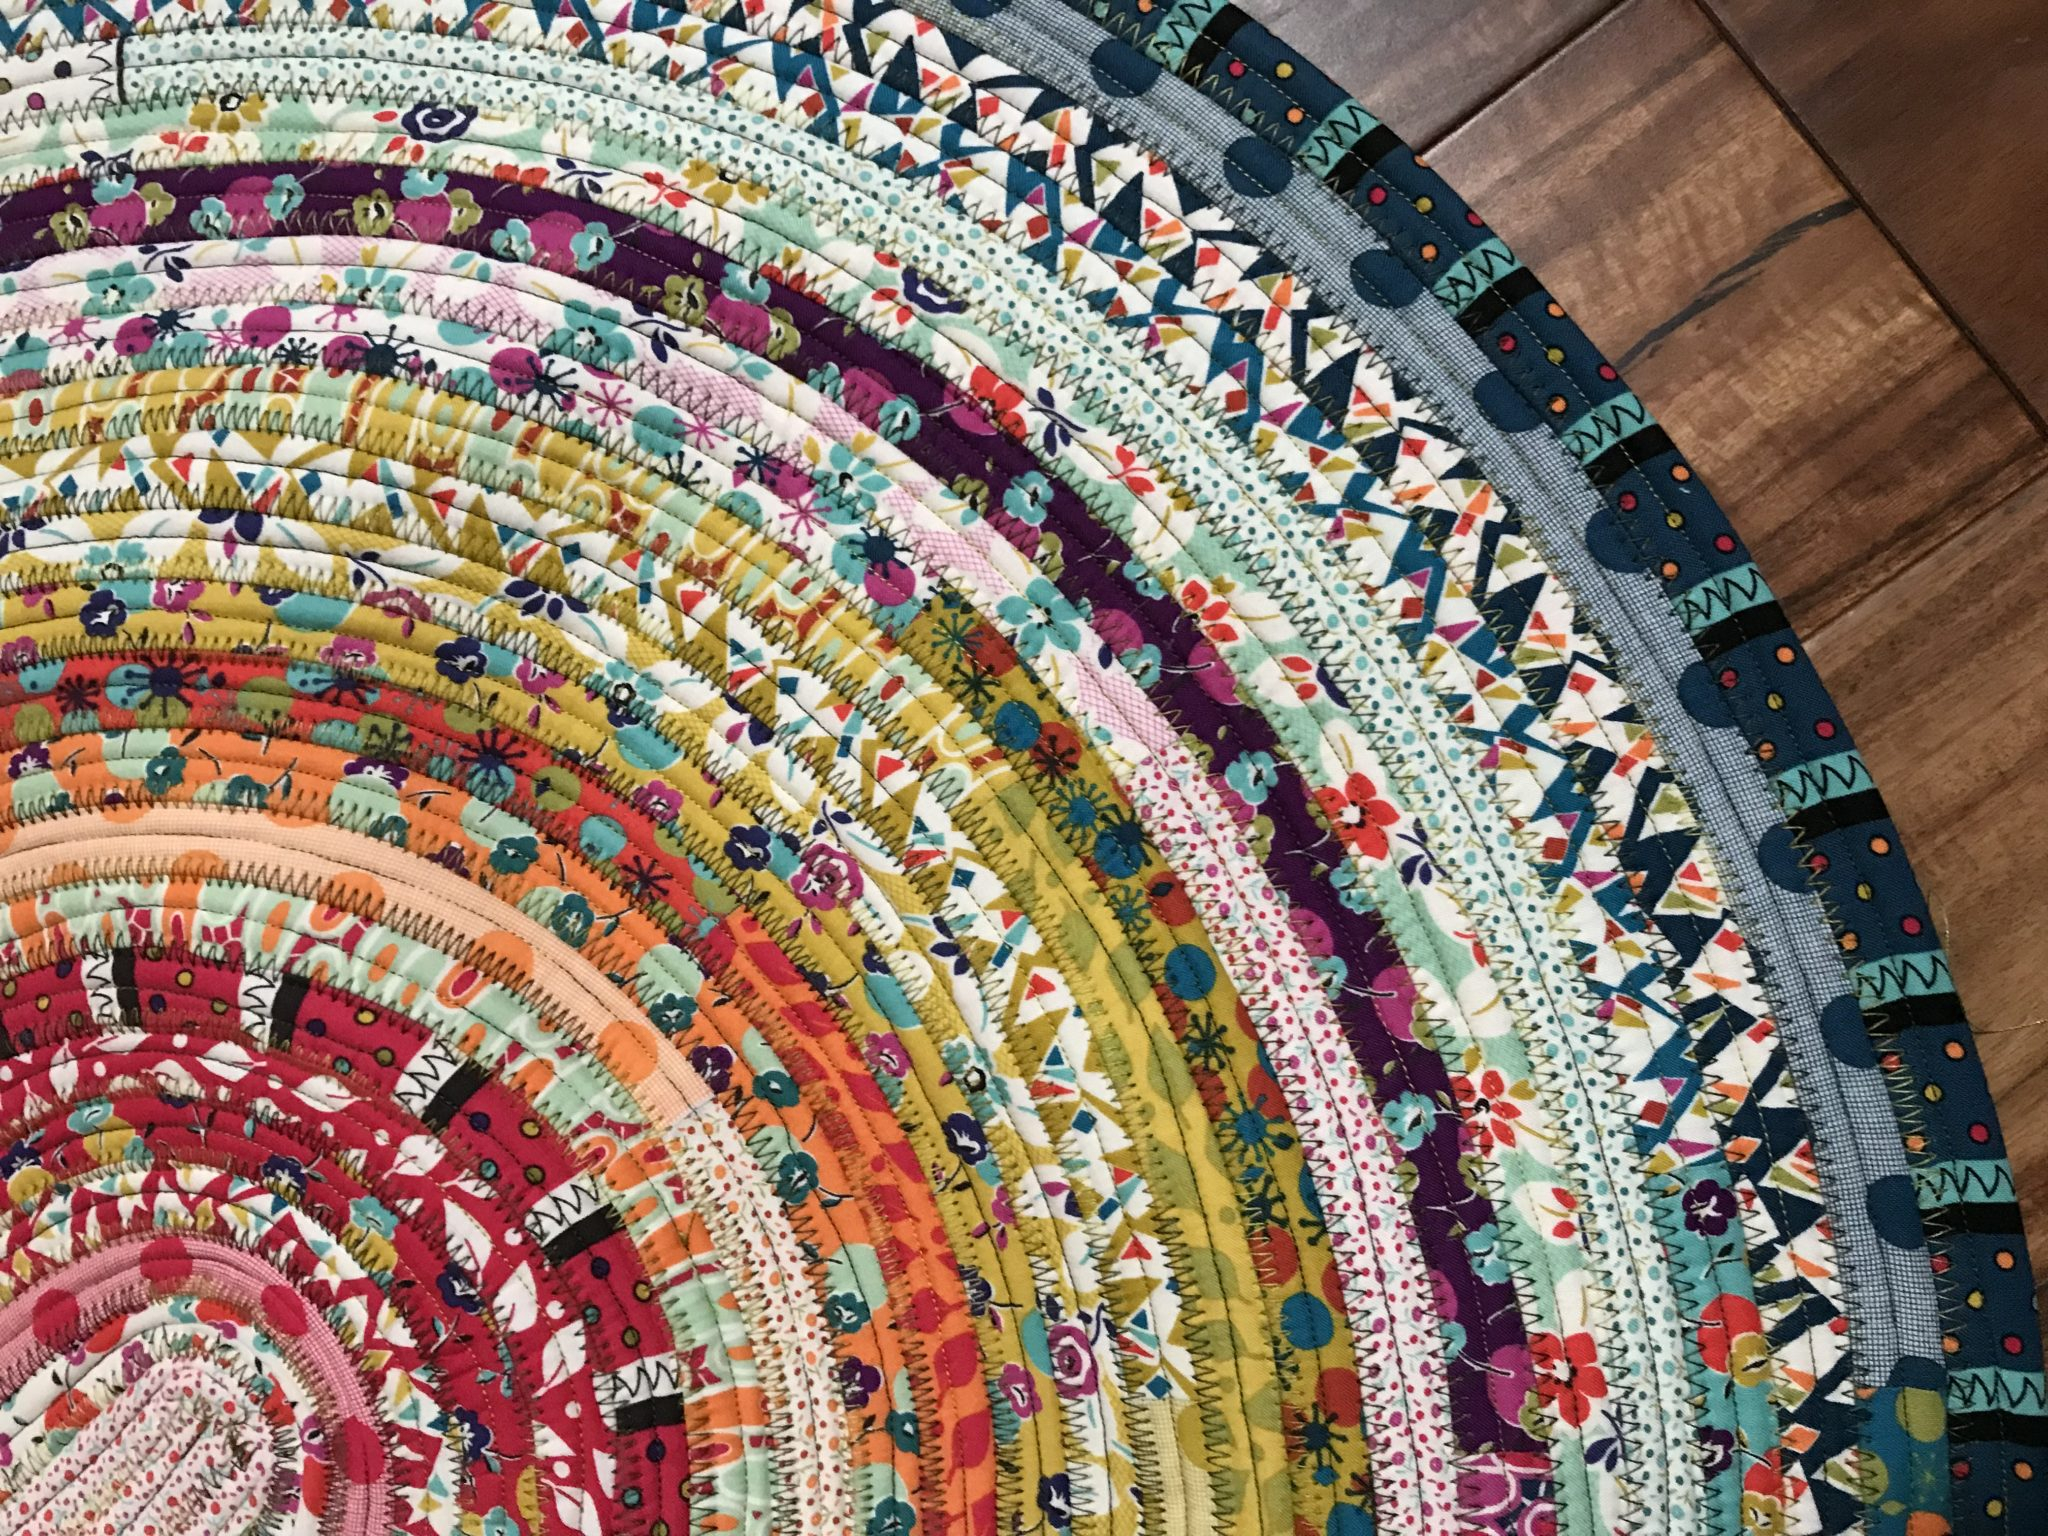 3 Motifs of Easy Crochet Oval Rug Pattern How To Make A Jelly Roll Rug Create Whimsy